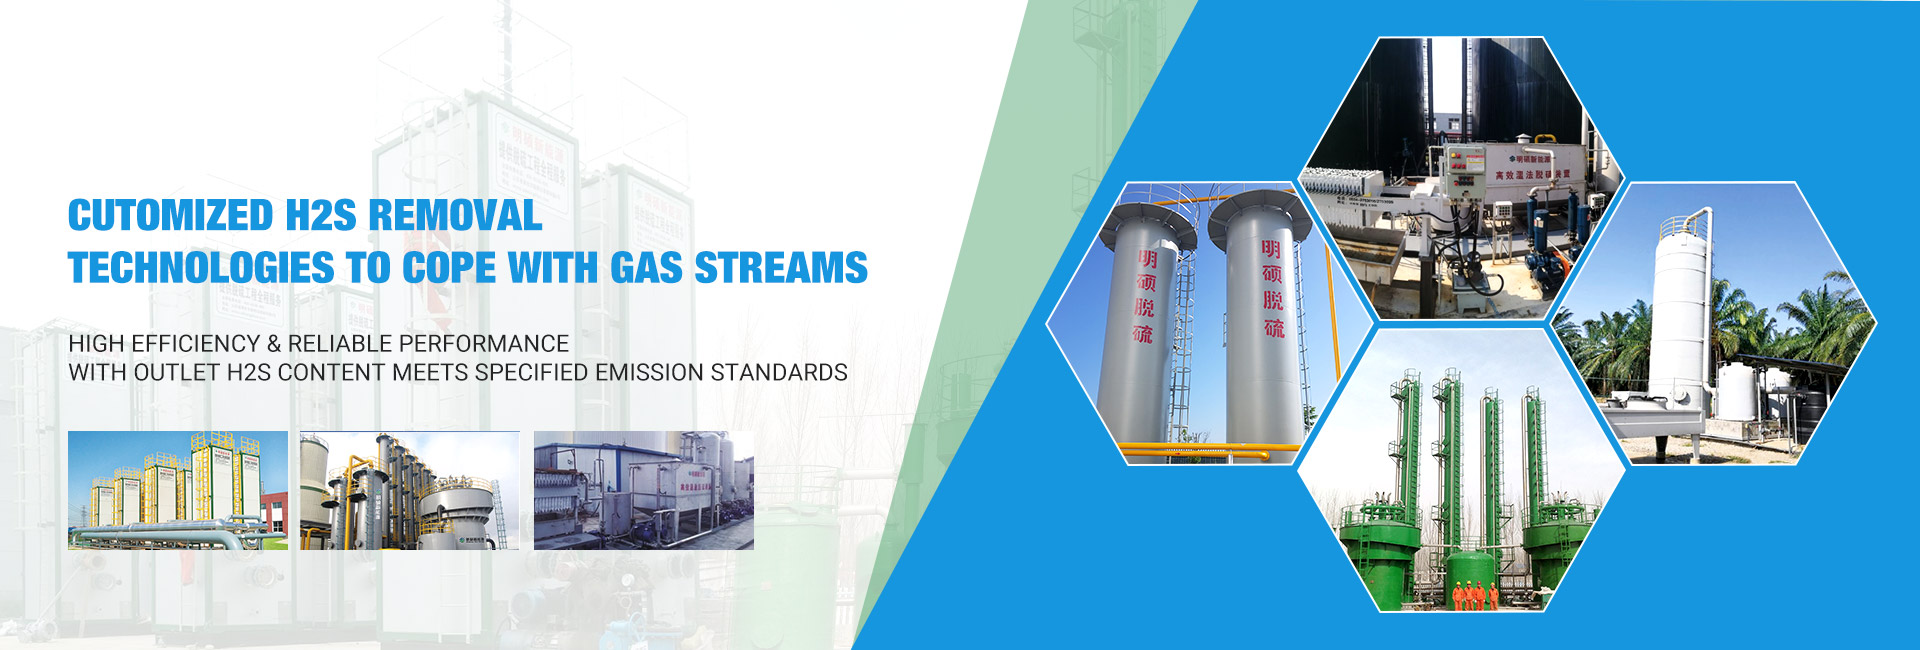 Cutomized H2S Removal Technologies to Cope with Gas Streams